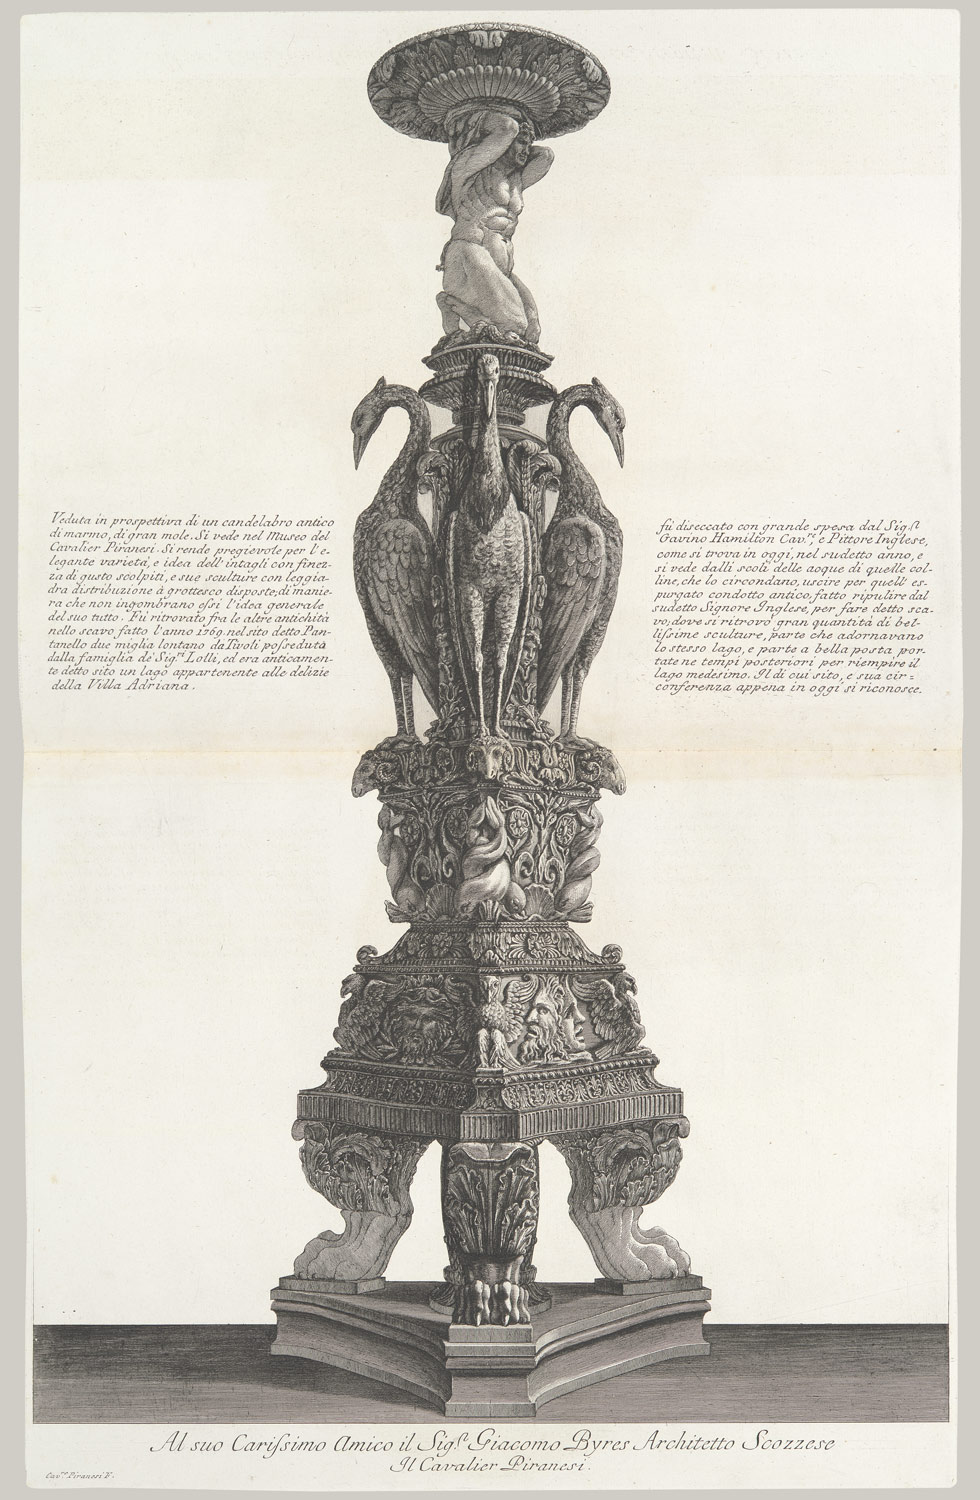 Perspective view of the same candelabrum, from Vasi, candelabri, cippi, sarcofagi, tripodi, lucerne, ed ornamenti antichi, vol. II (Vases, candelabra, grave stones, sarcophagi, tripods, lamps, and ornaments)